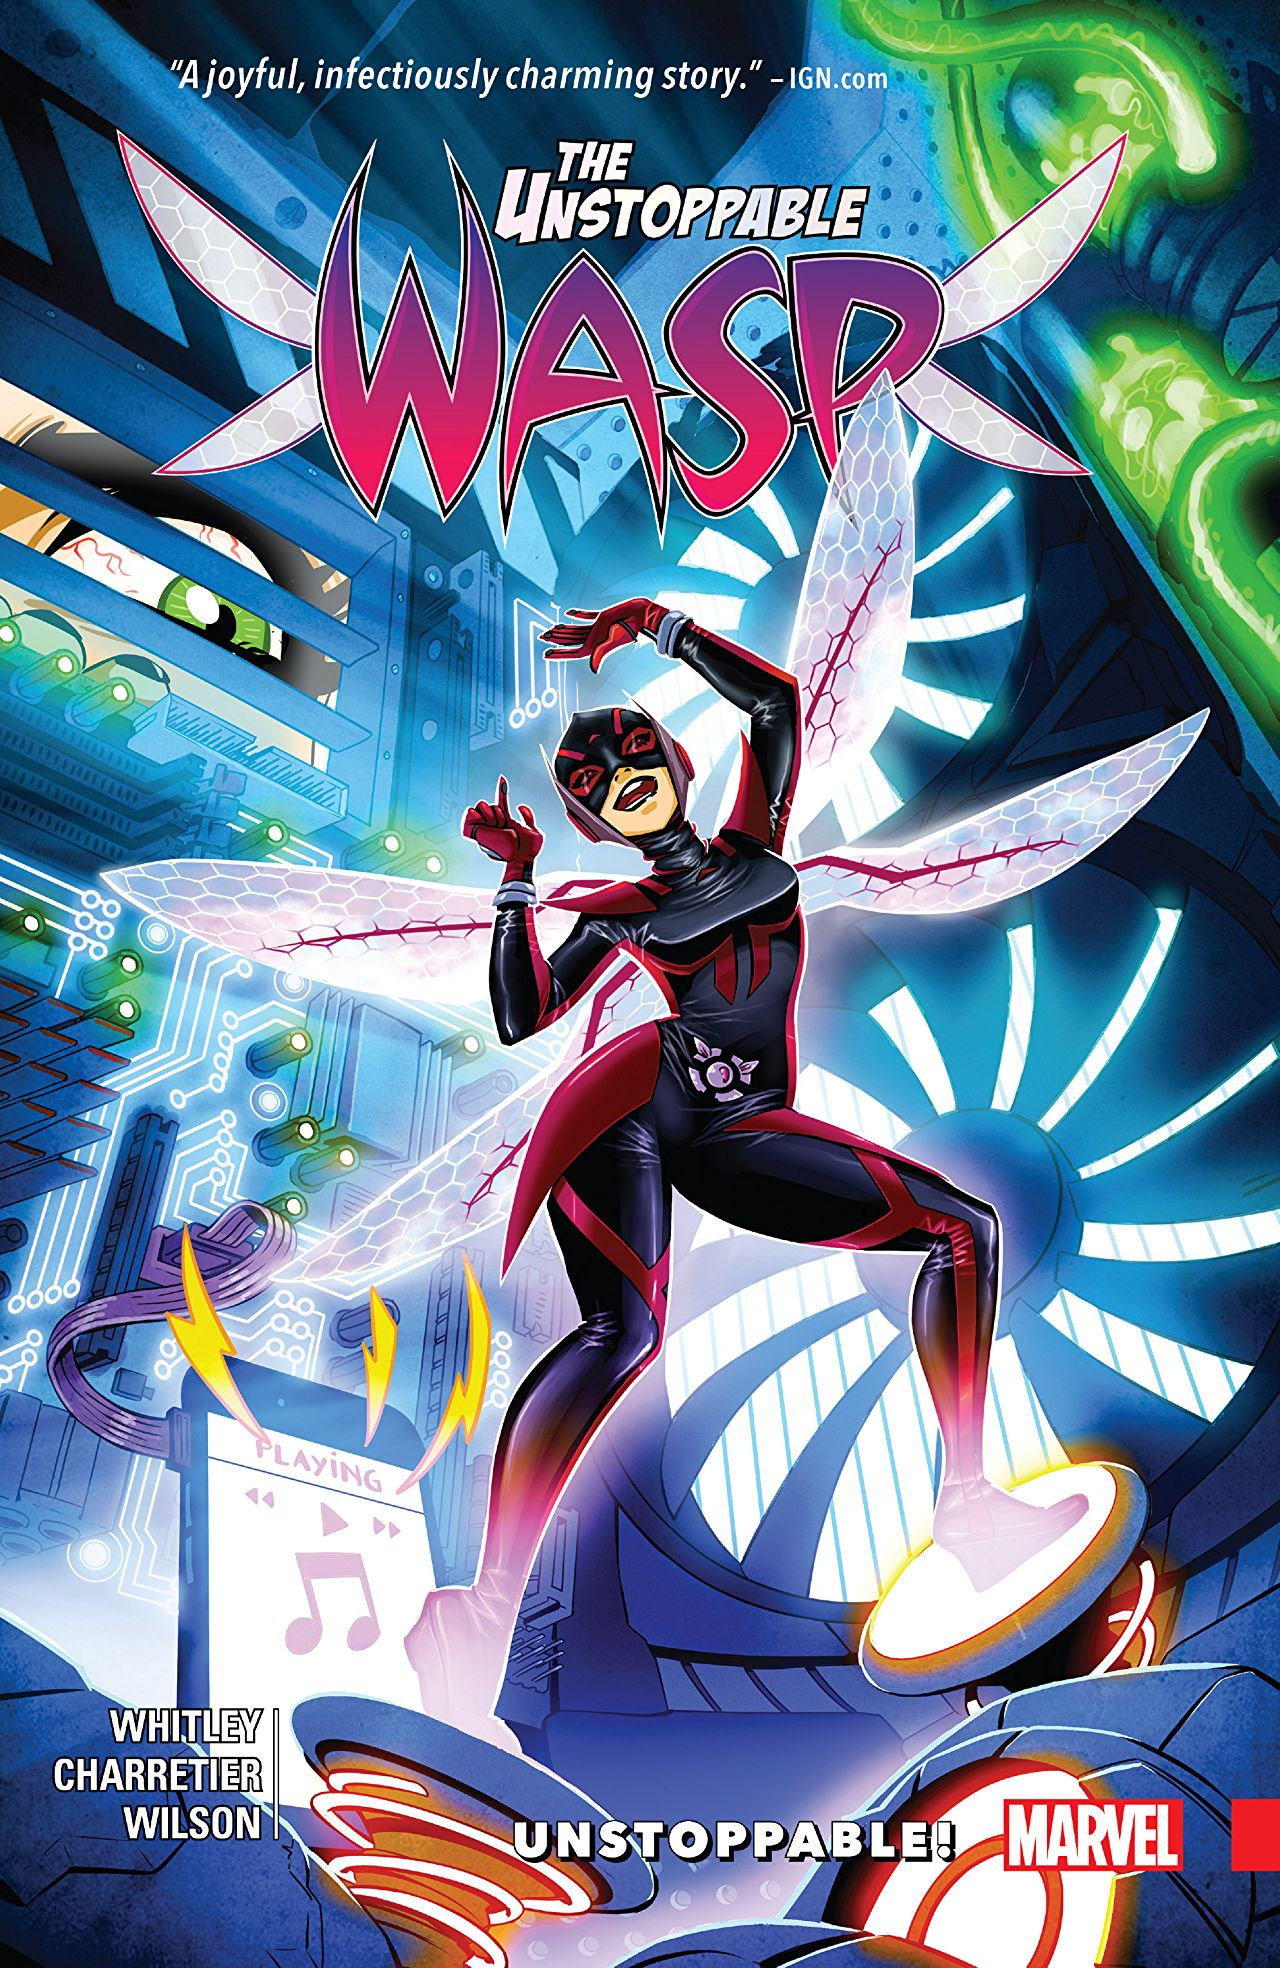 If you've been on the fence about Wasp getting her own series, read this collection and thank me later.